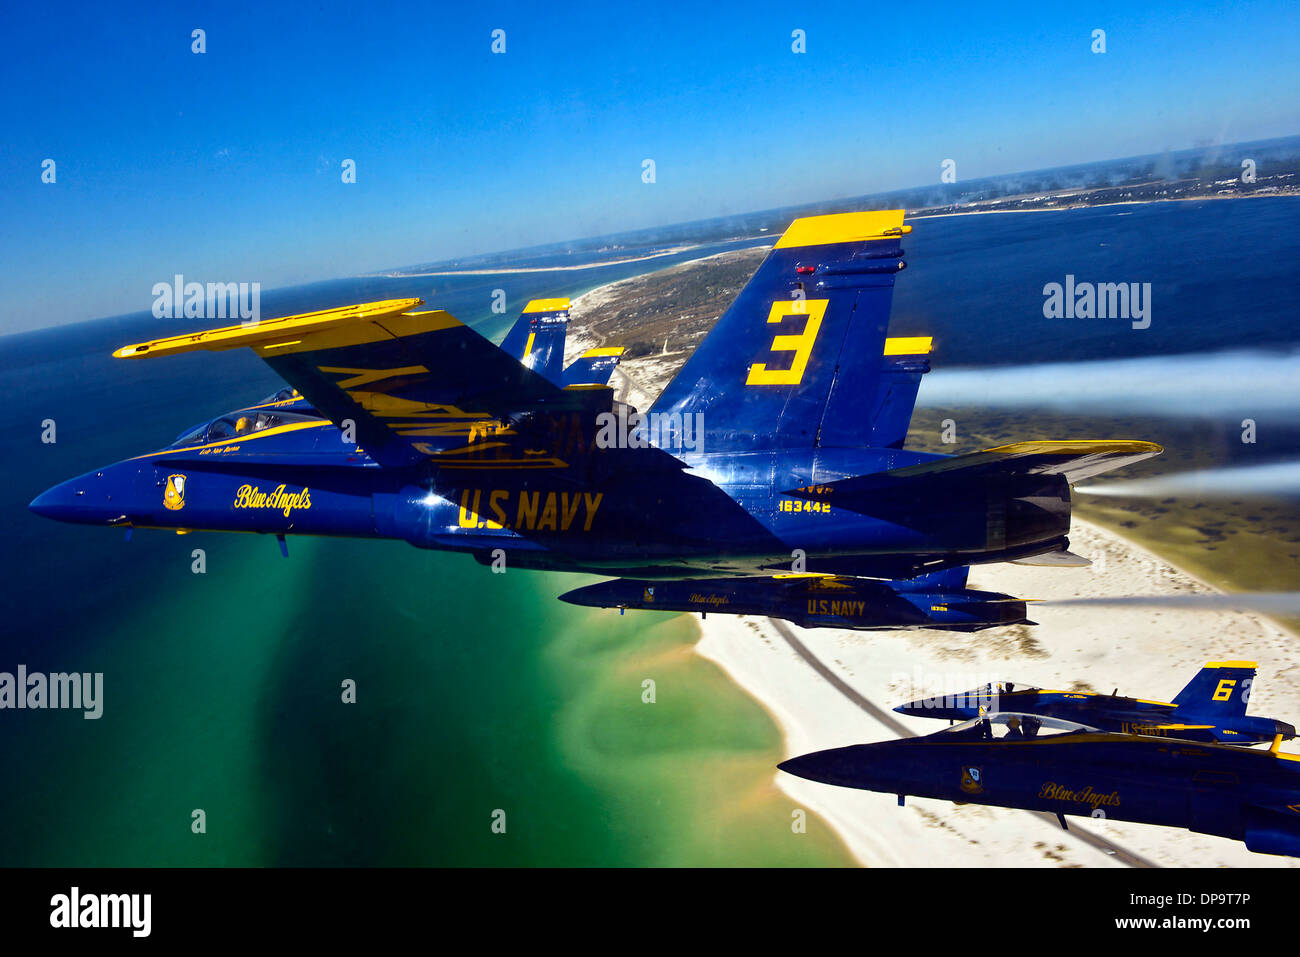 Pilots of the U.S. Navy Blue Angels fly in a delta formation during a training flight - Stock Image